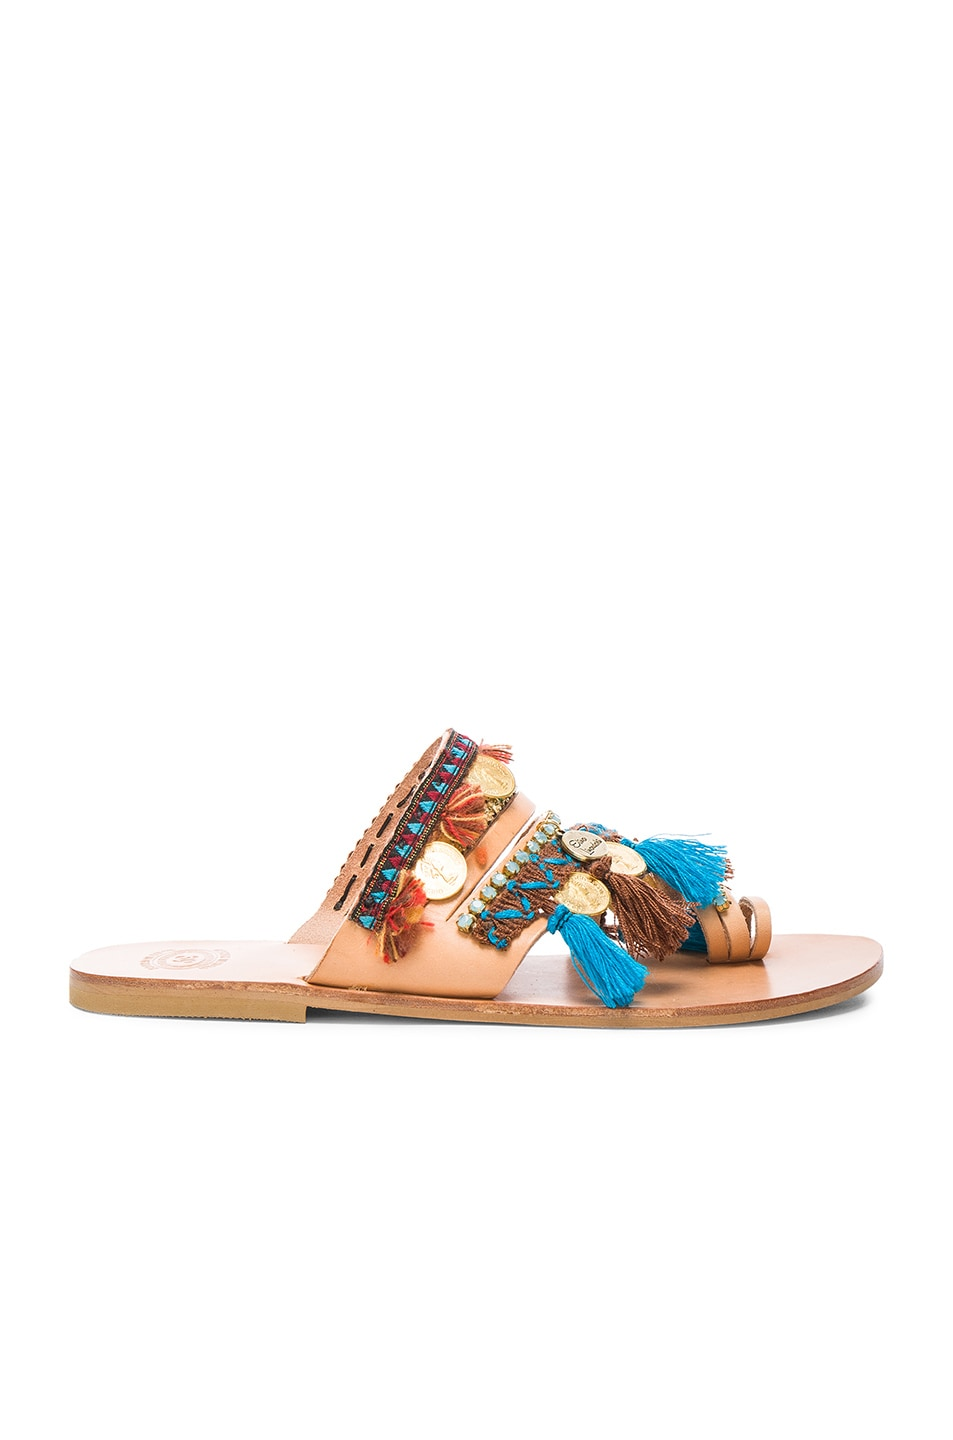 Image 2 of Elina Linardaki Leather Marrakech Sandals in Multi